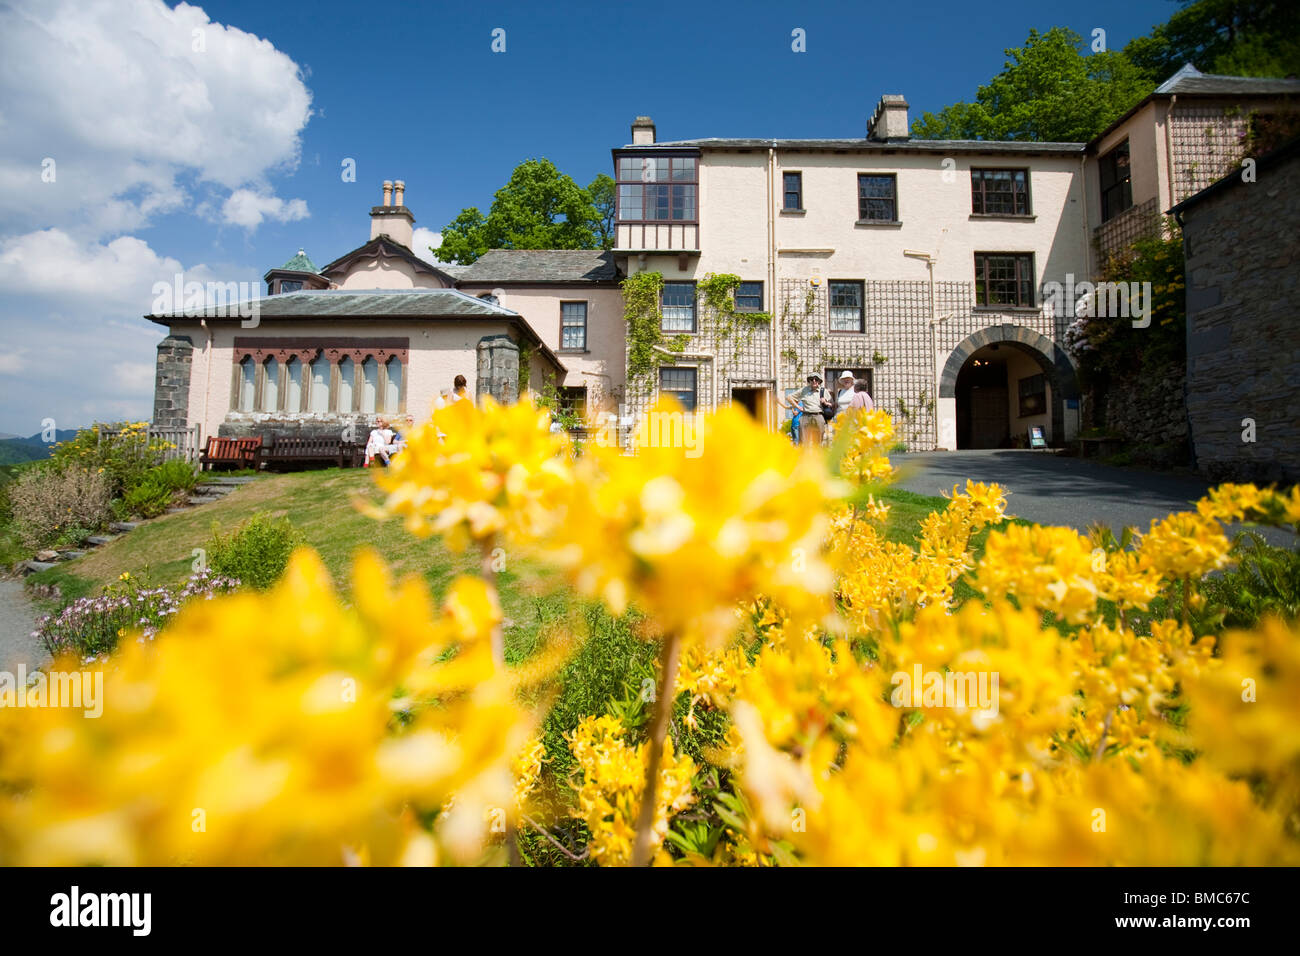 Brantwood House, the home of John Ruskin the artist, on the shores of Coniston Water, Lake District, UK. - Stock Image